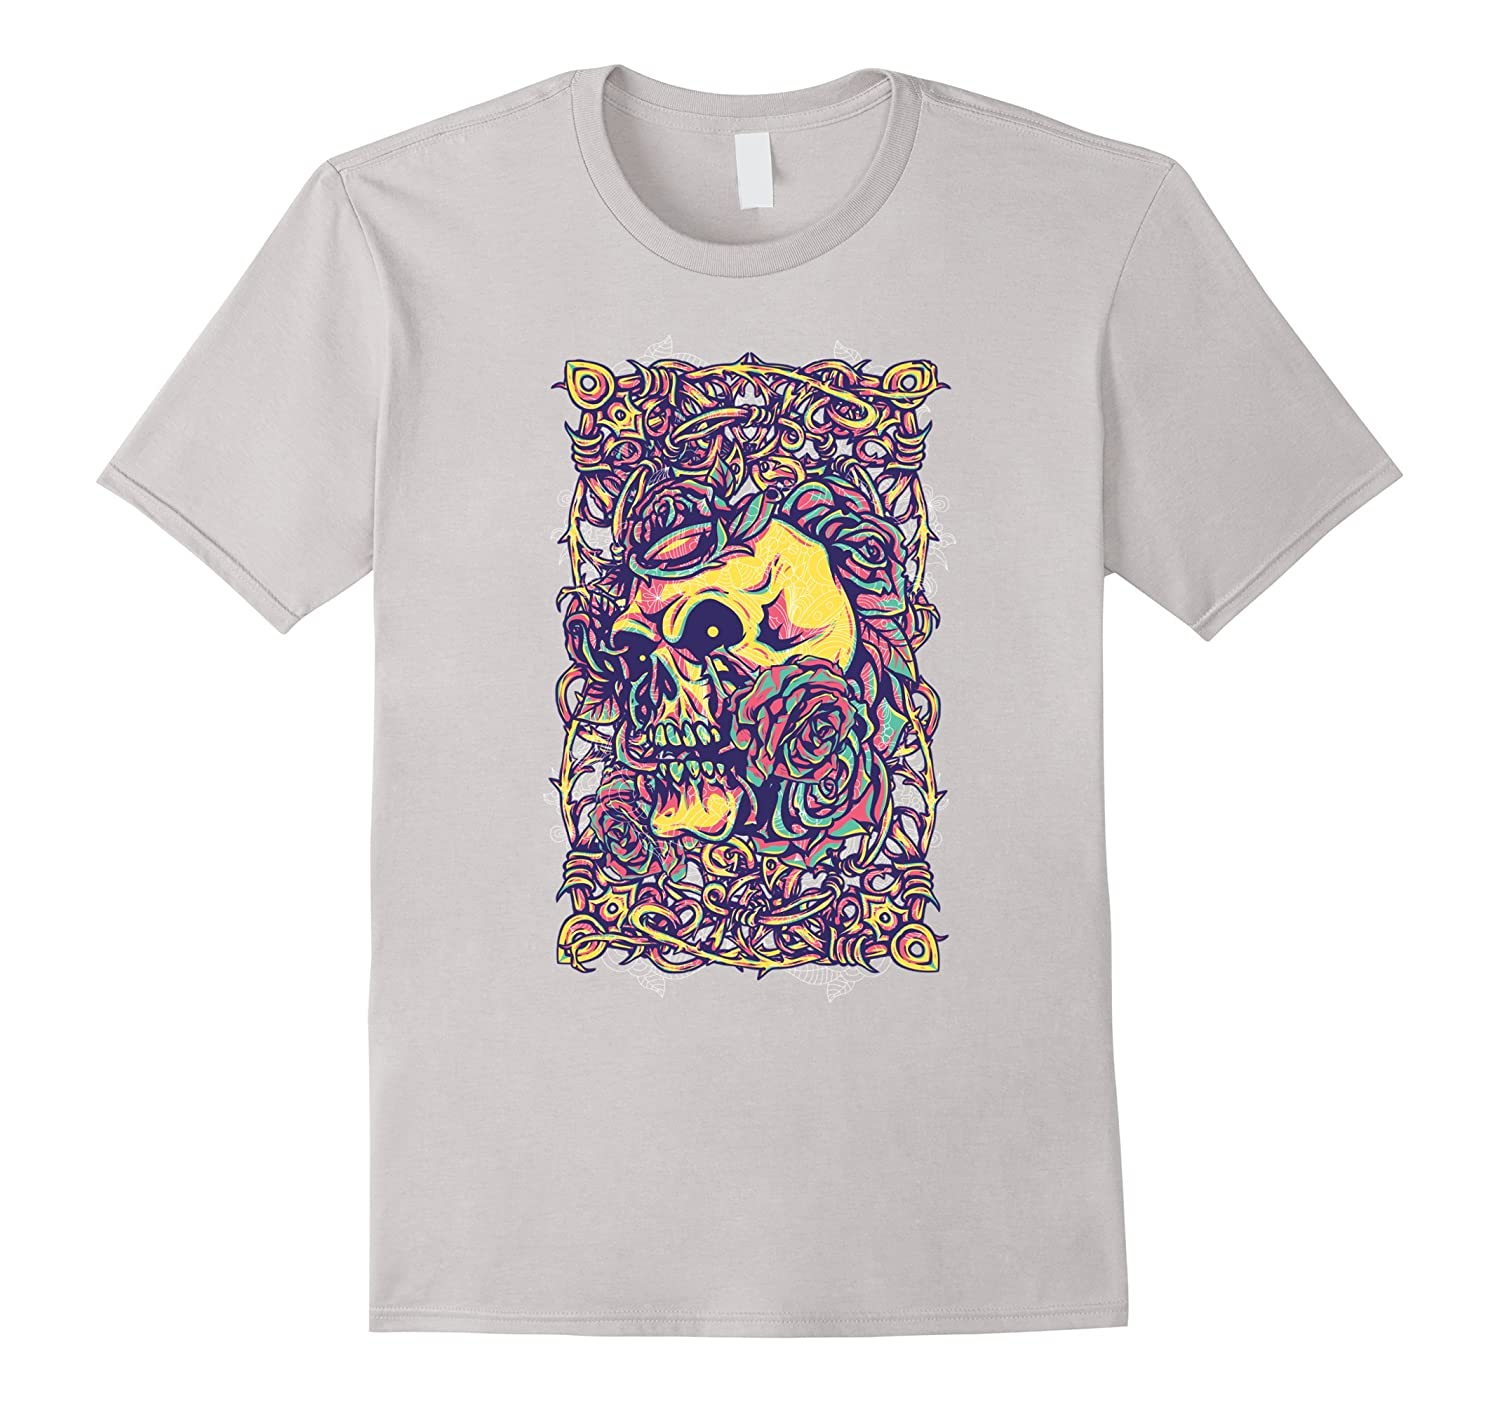 Vintage Skull And Roses Scary Design T-Shirt